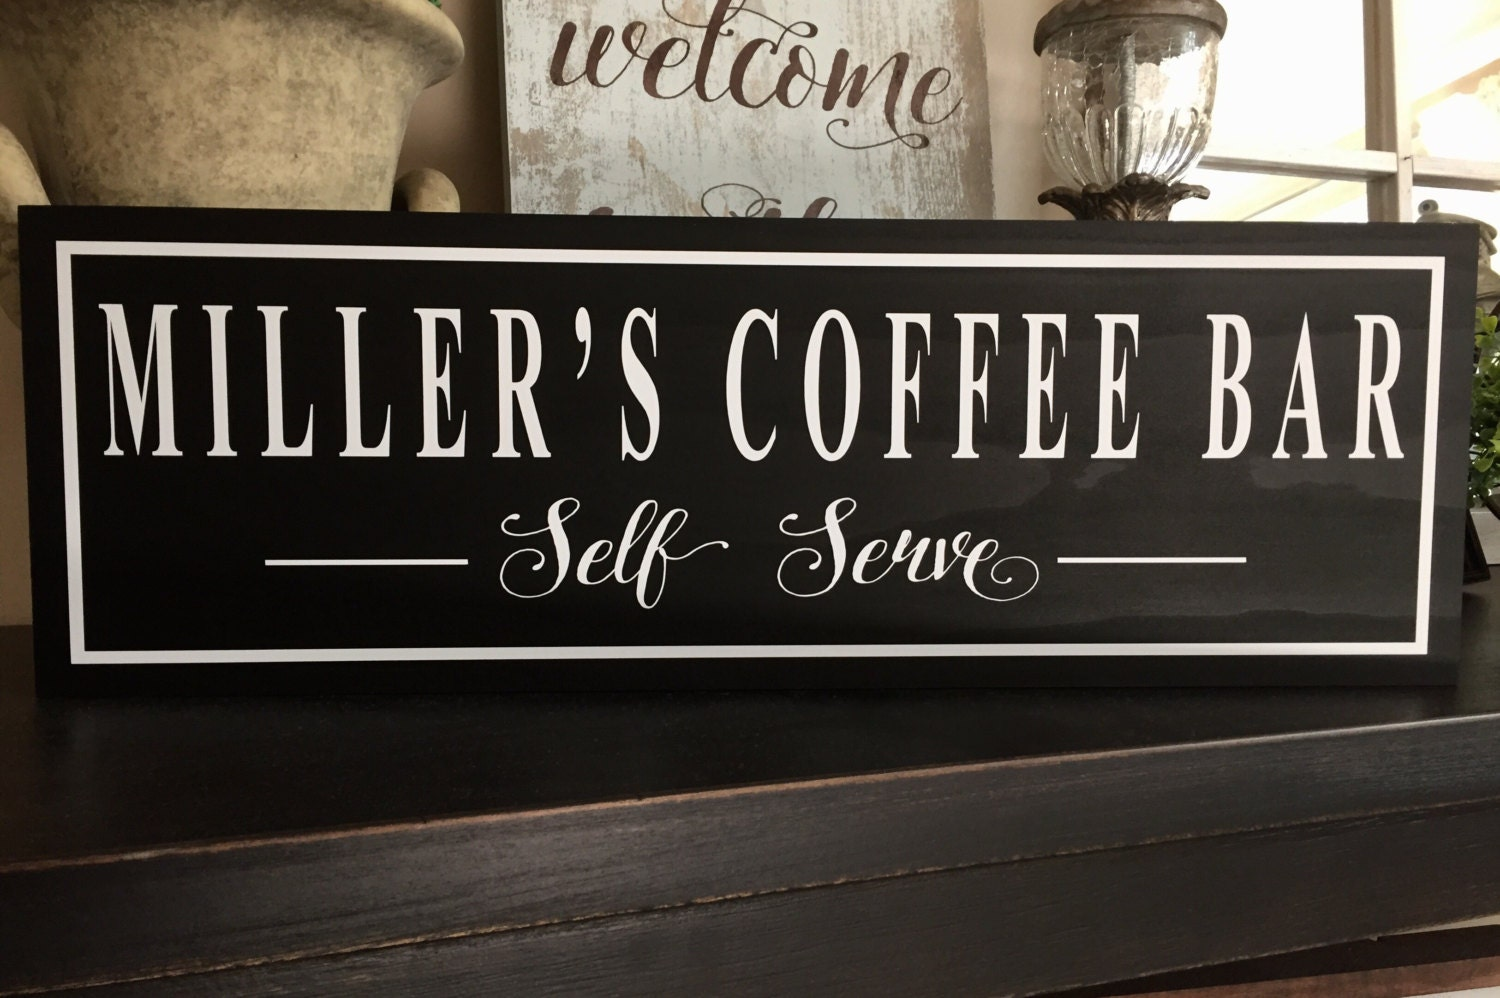 Coffee Bar Sign Coffee Sign Personalized Kitchen Sign. Beach Decore. Math Decorations For Classroom. Solar Powered Decorative Lanterns. Room Air Purifier Reviews. Decorative Wood Wall Panels. Craft Room Organization Ideas. Living Room Wall Decor. Black Room Decor